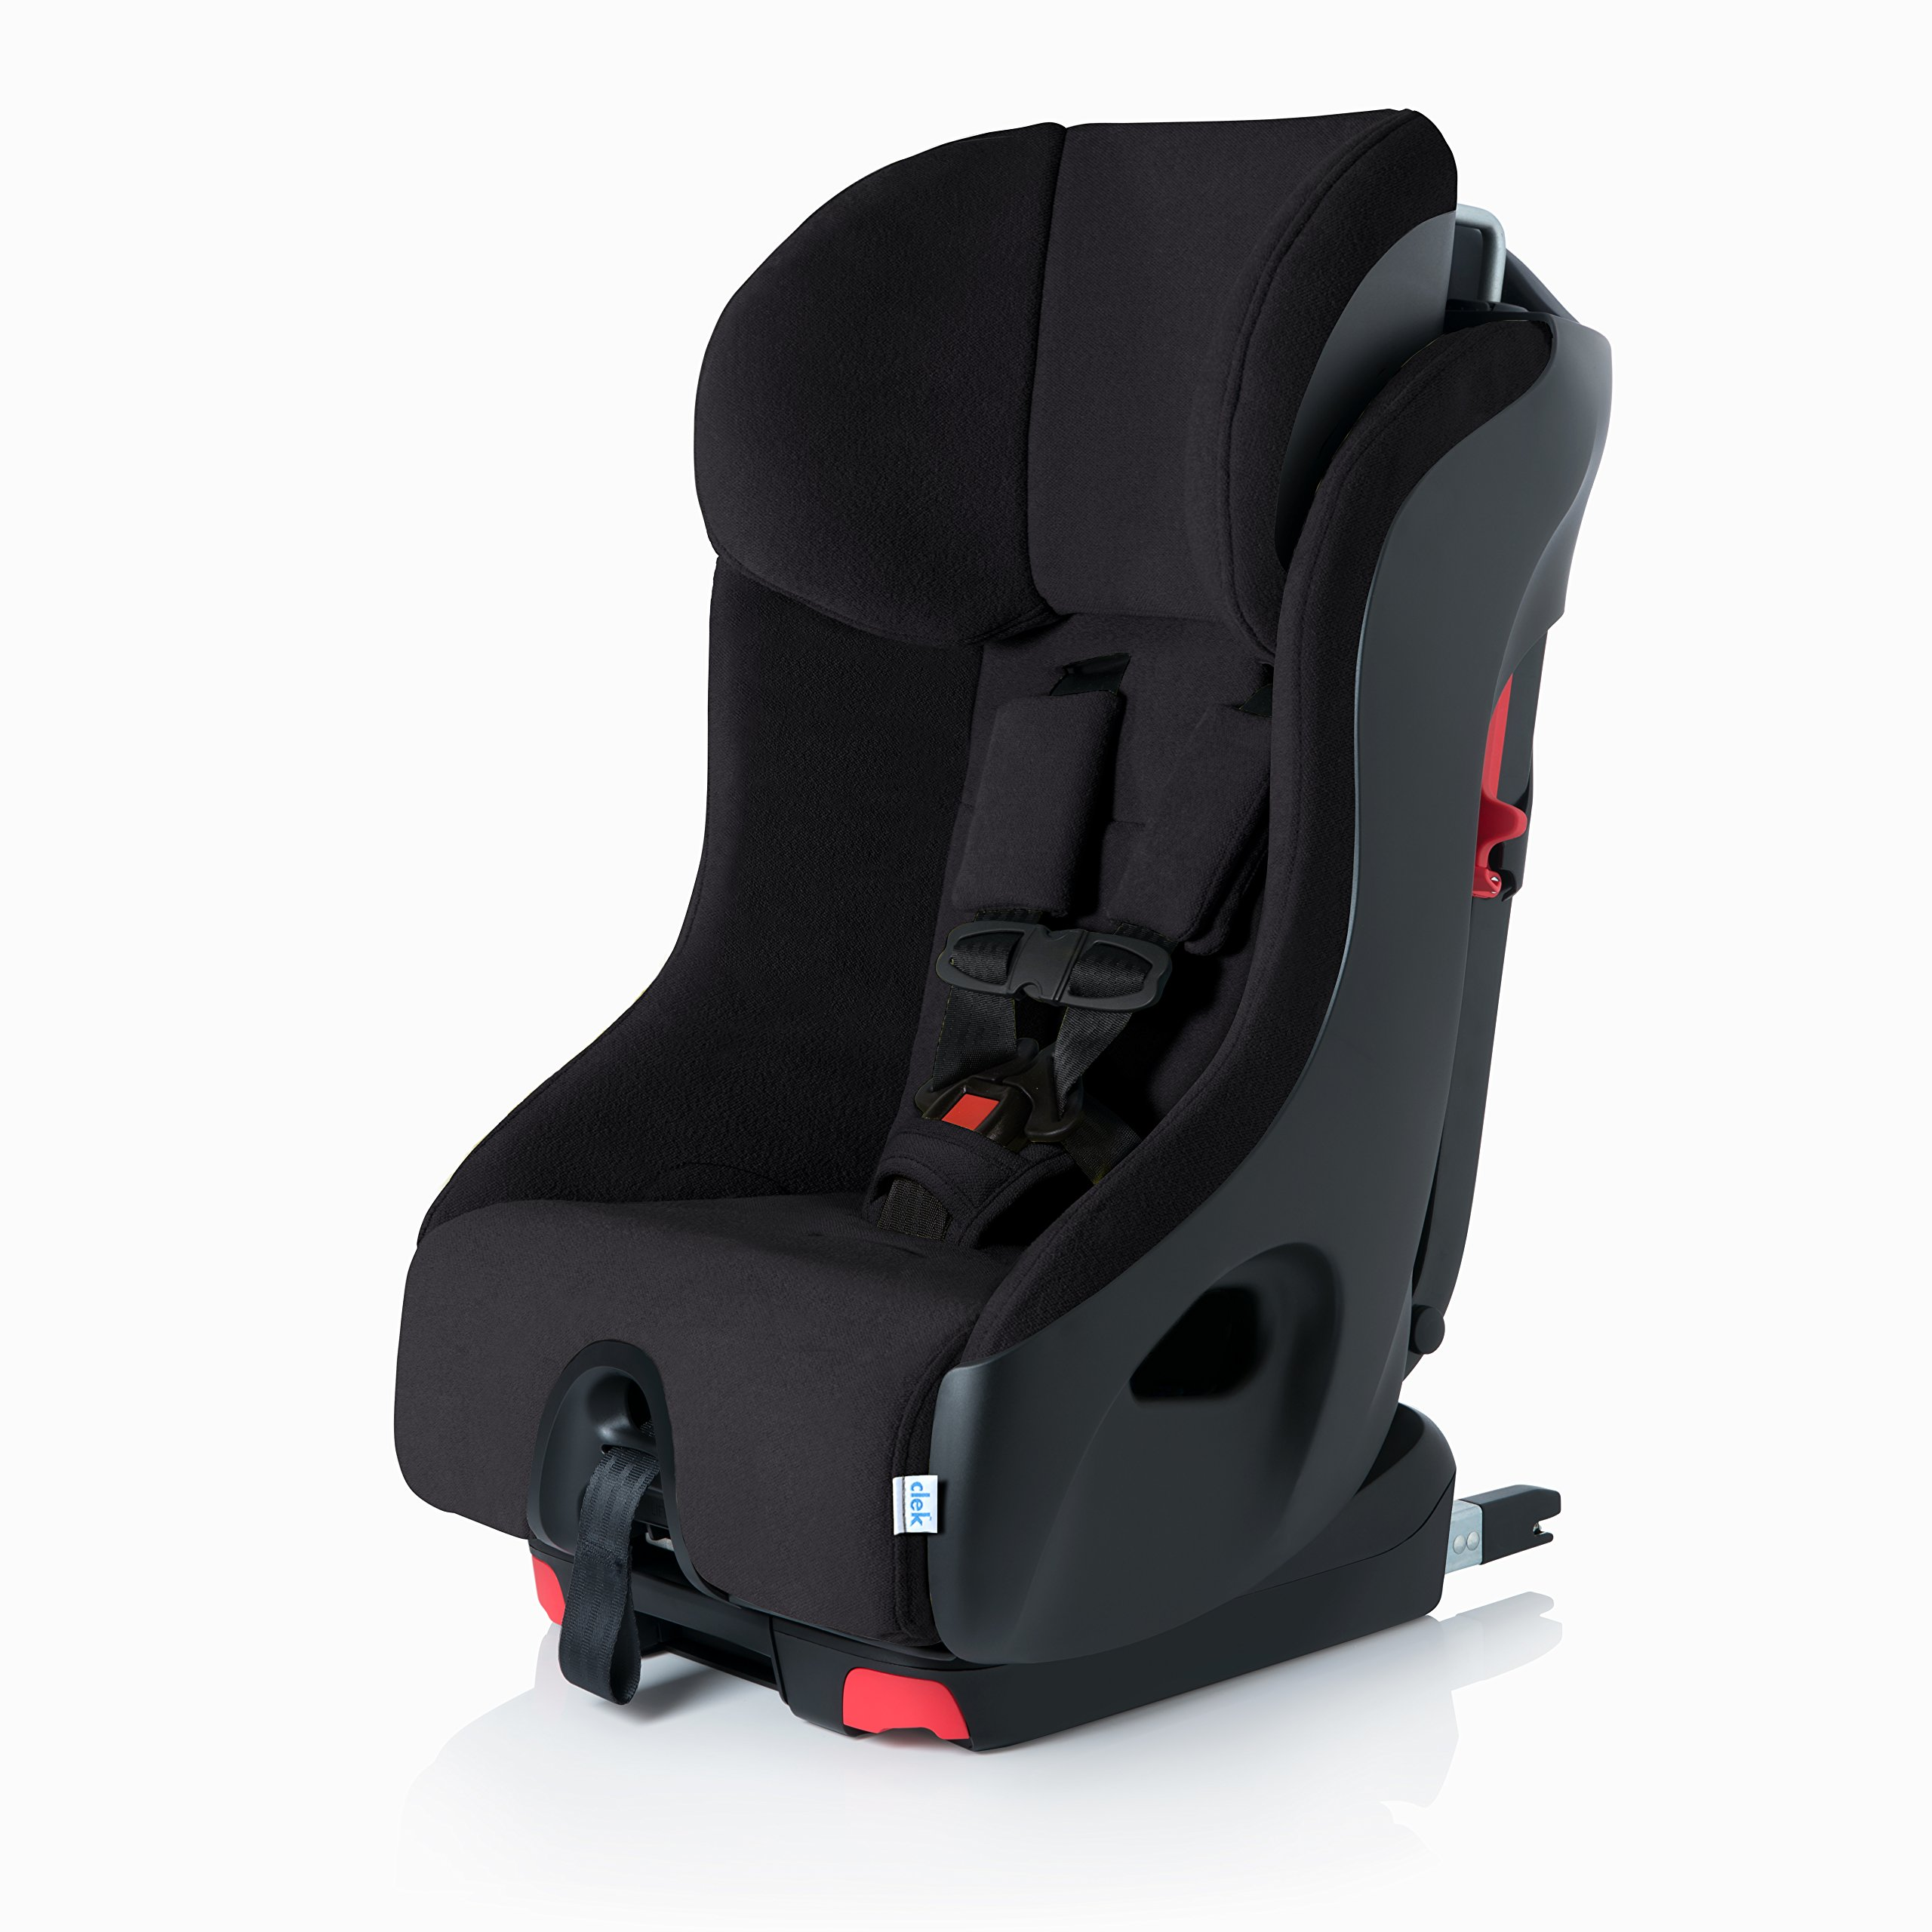 Clek Foonf Rigid Latch Convertible Baby and Toddler Car Seat, Rear and Forward Facing with Anti Rebound Bar,Shadow